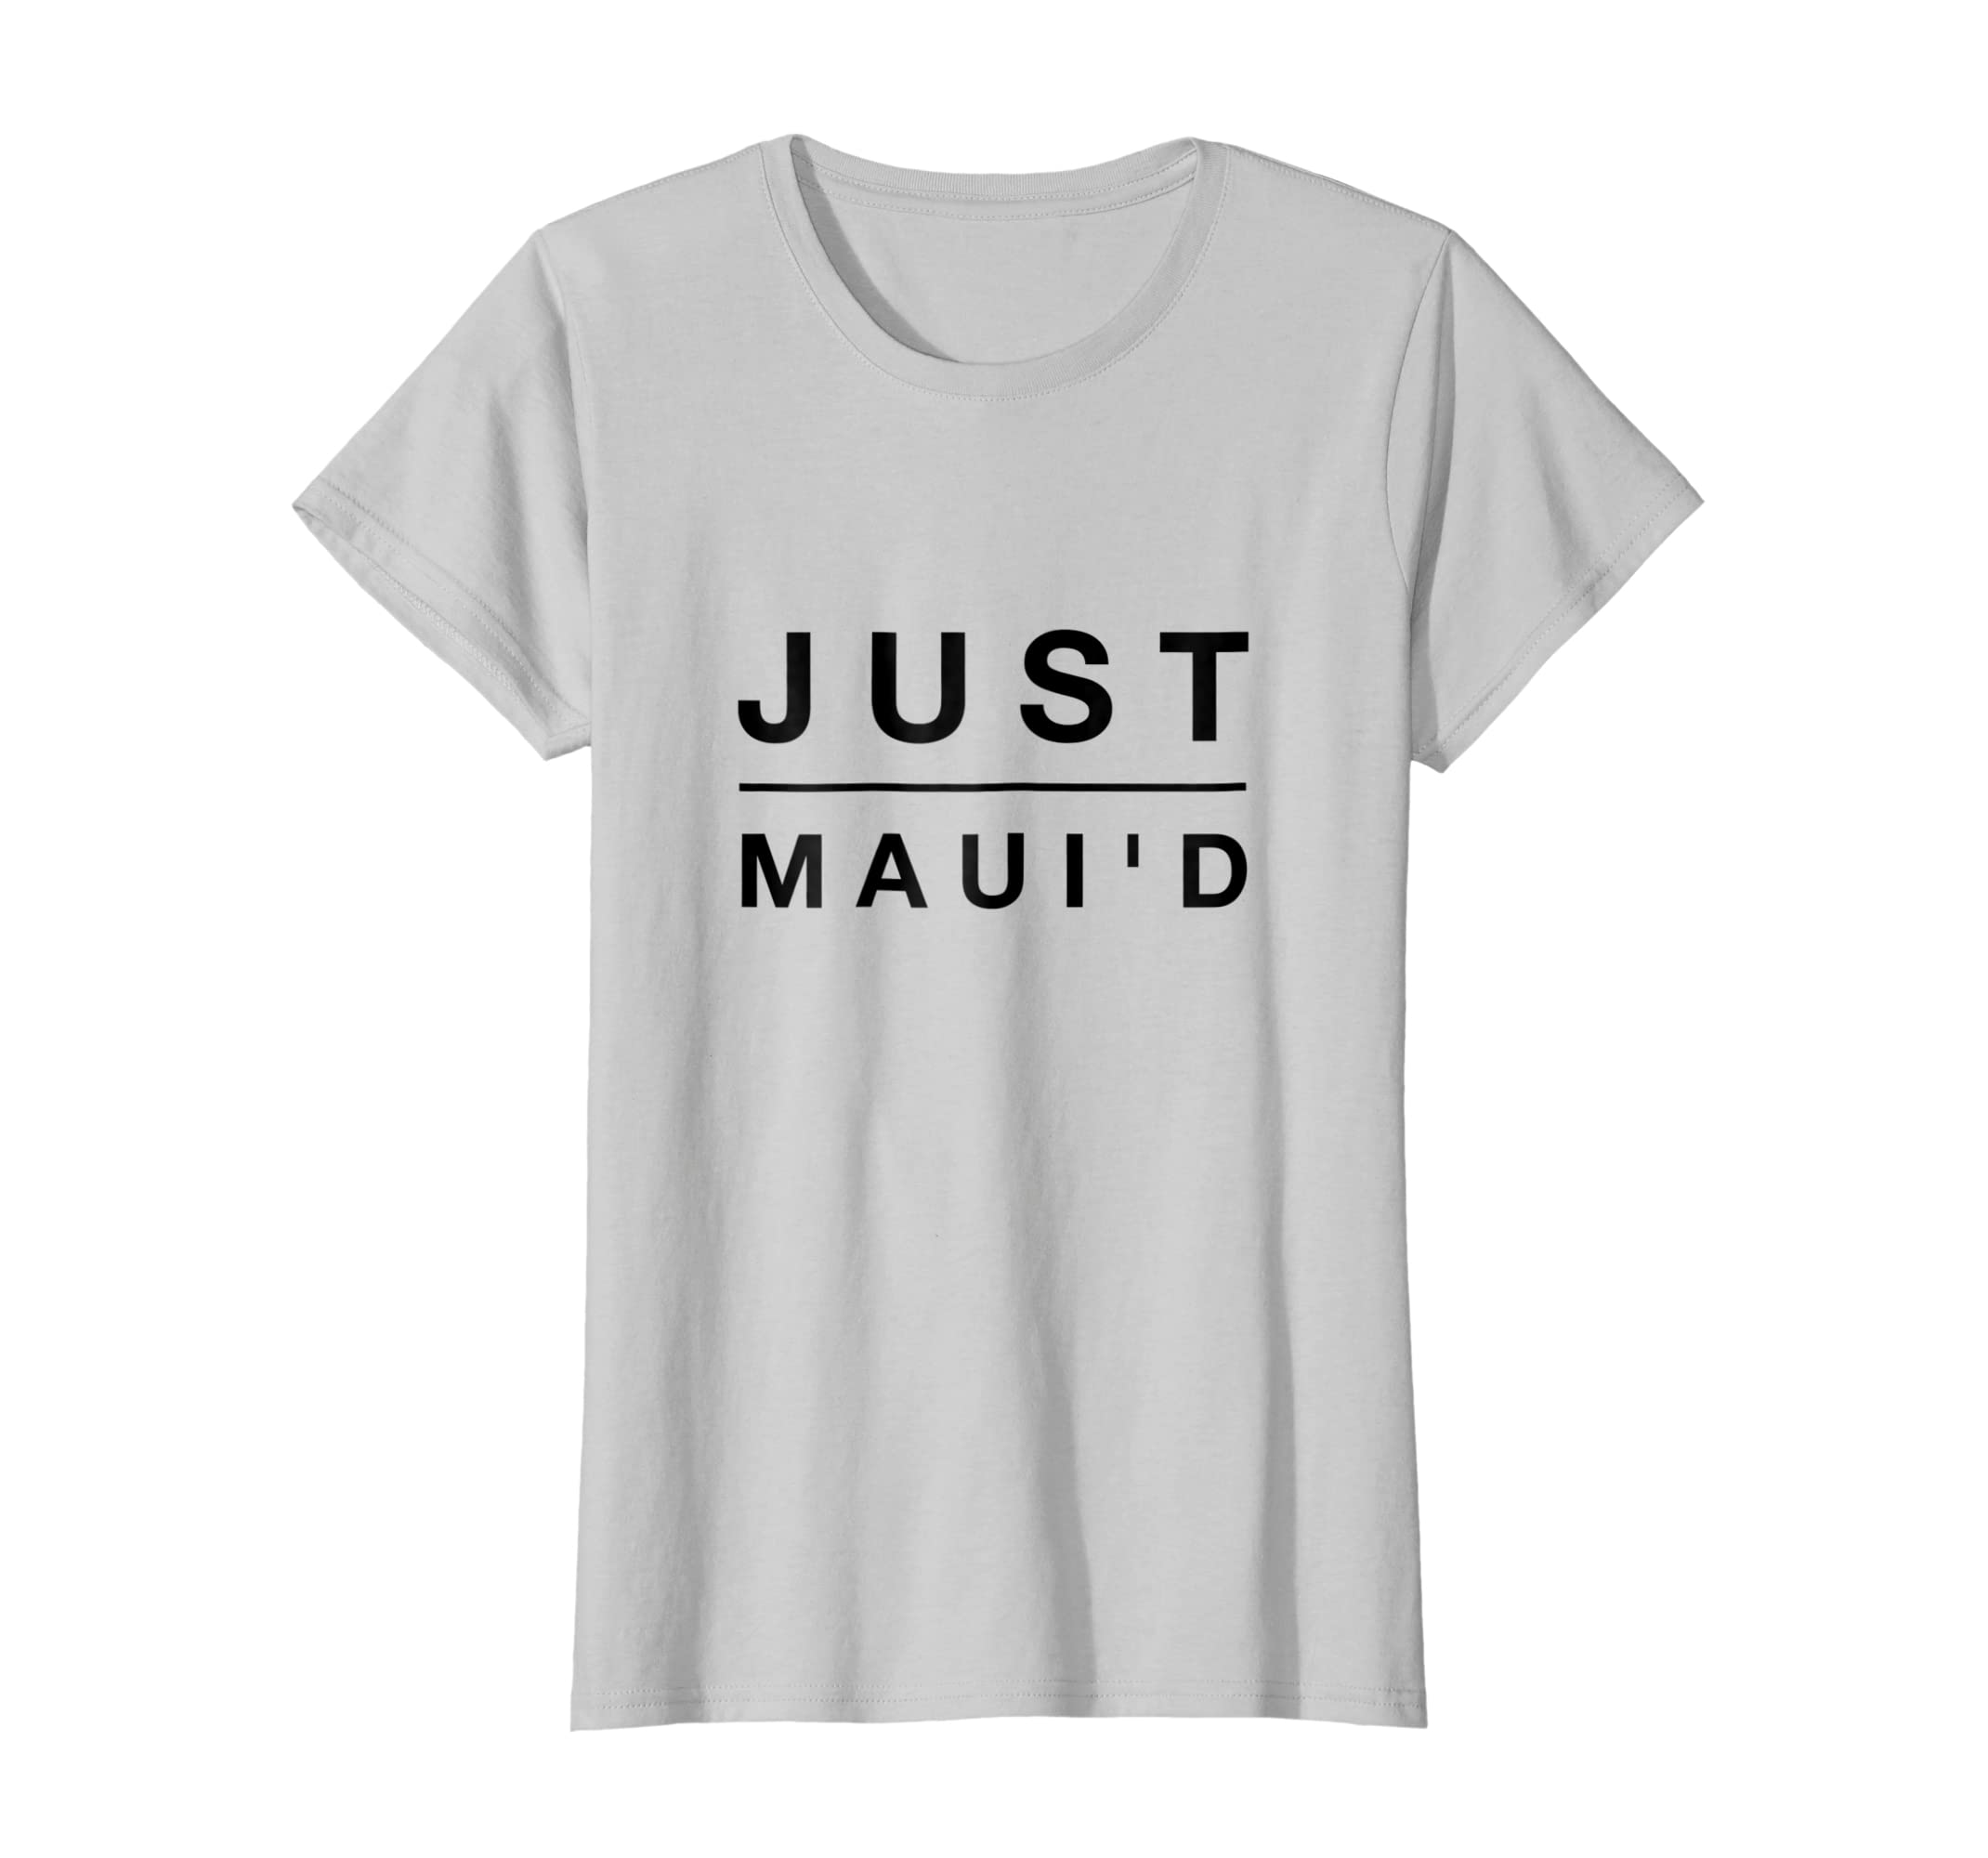 12a59a71 Amazon.com: Funny Just Maui'd Honeymoon T Shirt - Just Married Tee: Clothing